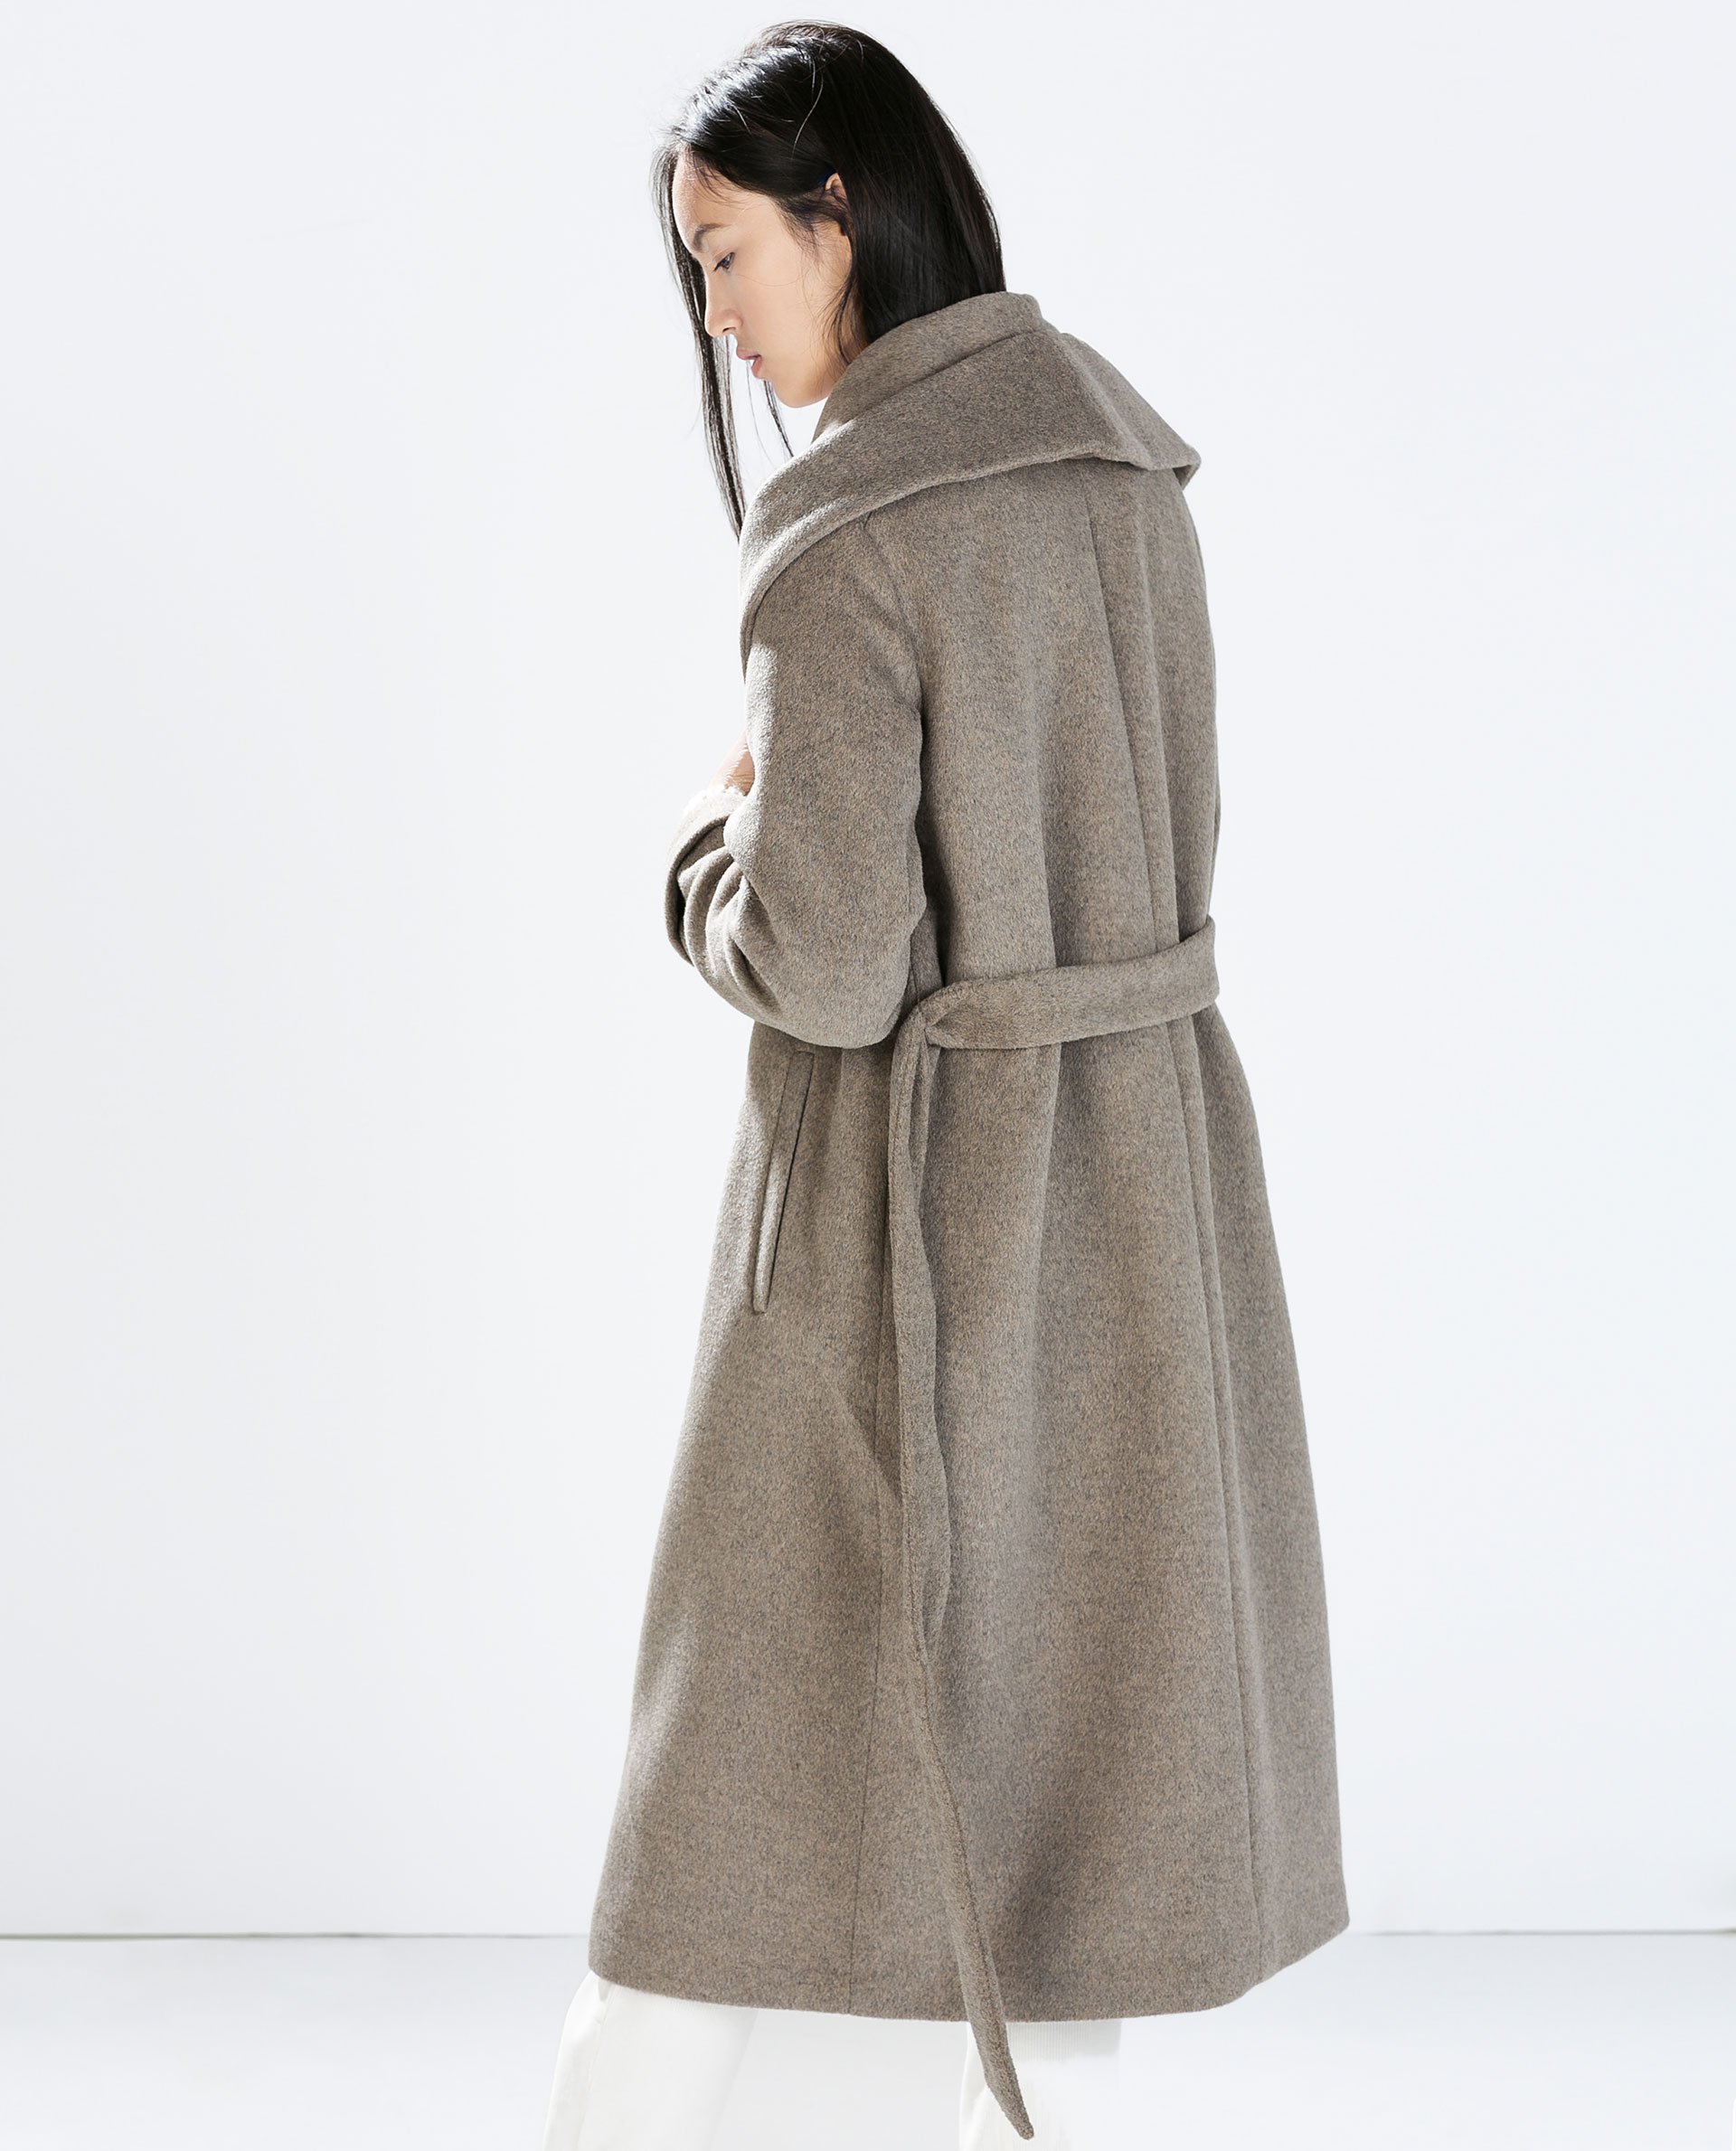 COAT WITH BELT - Outerwear - WOMAN | ZARA United States